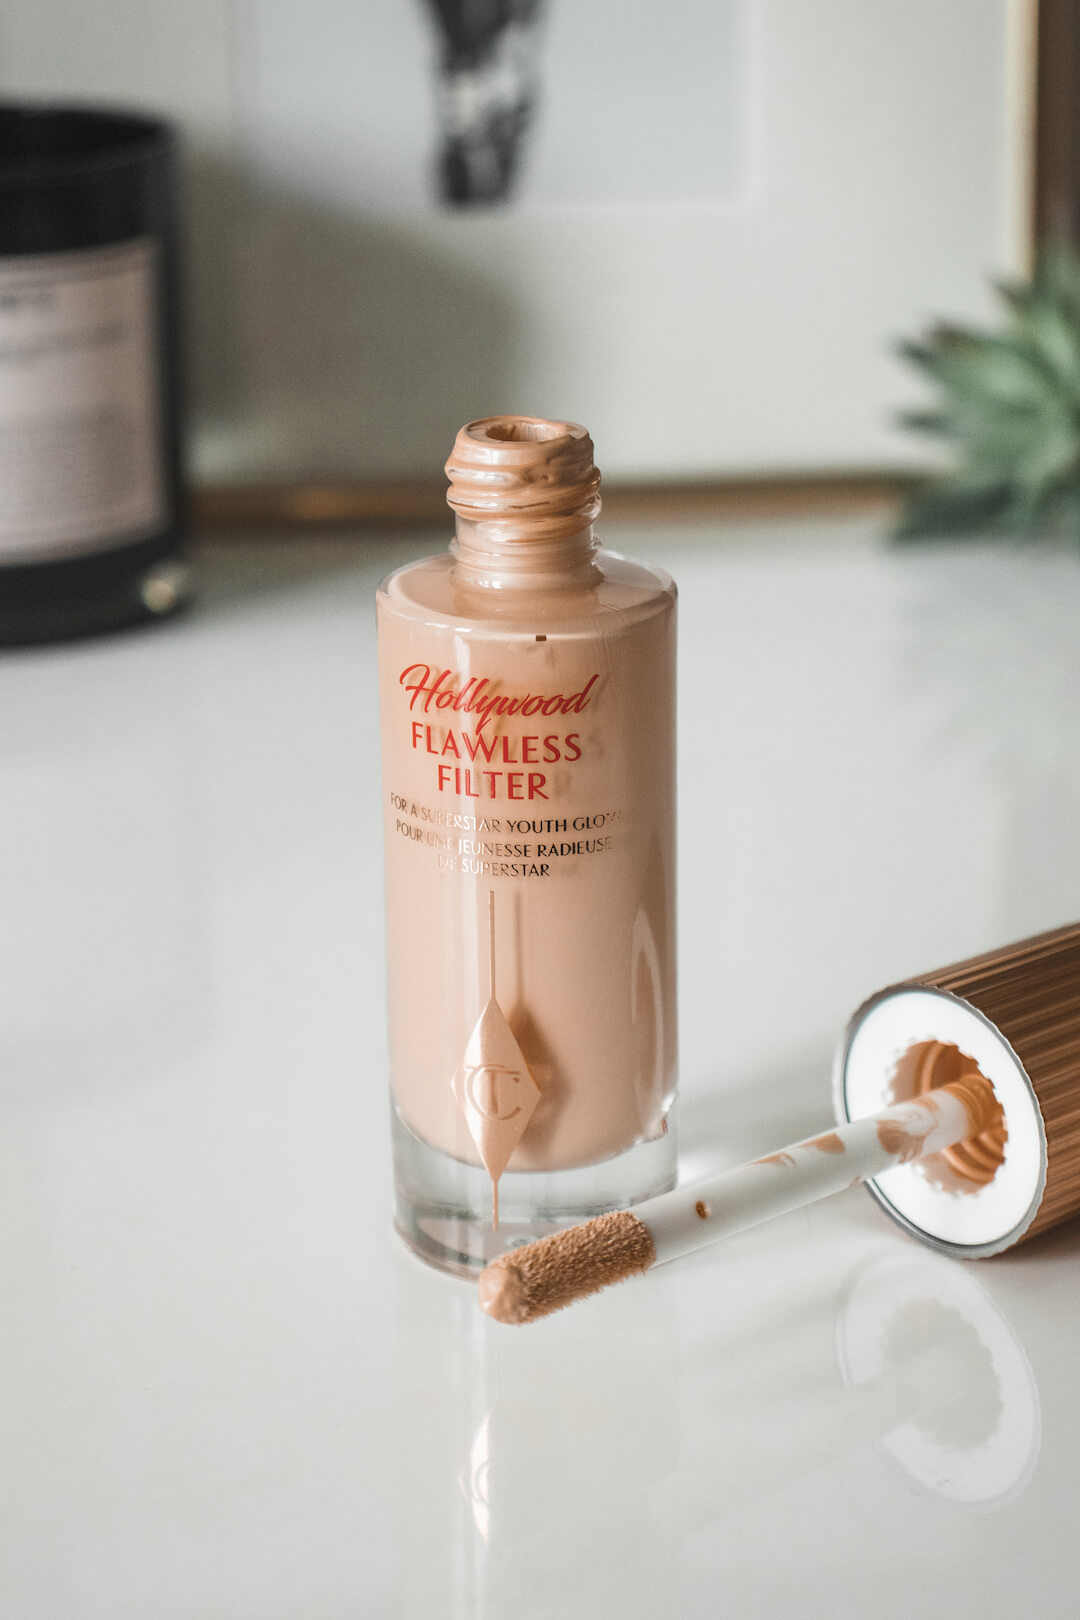 The Charlotte Tilbury Hollywood Flawless Filter Is the Prettiest Highlighter... Ever?